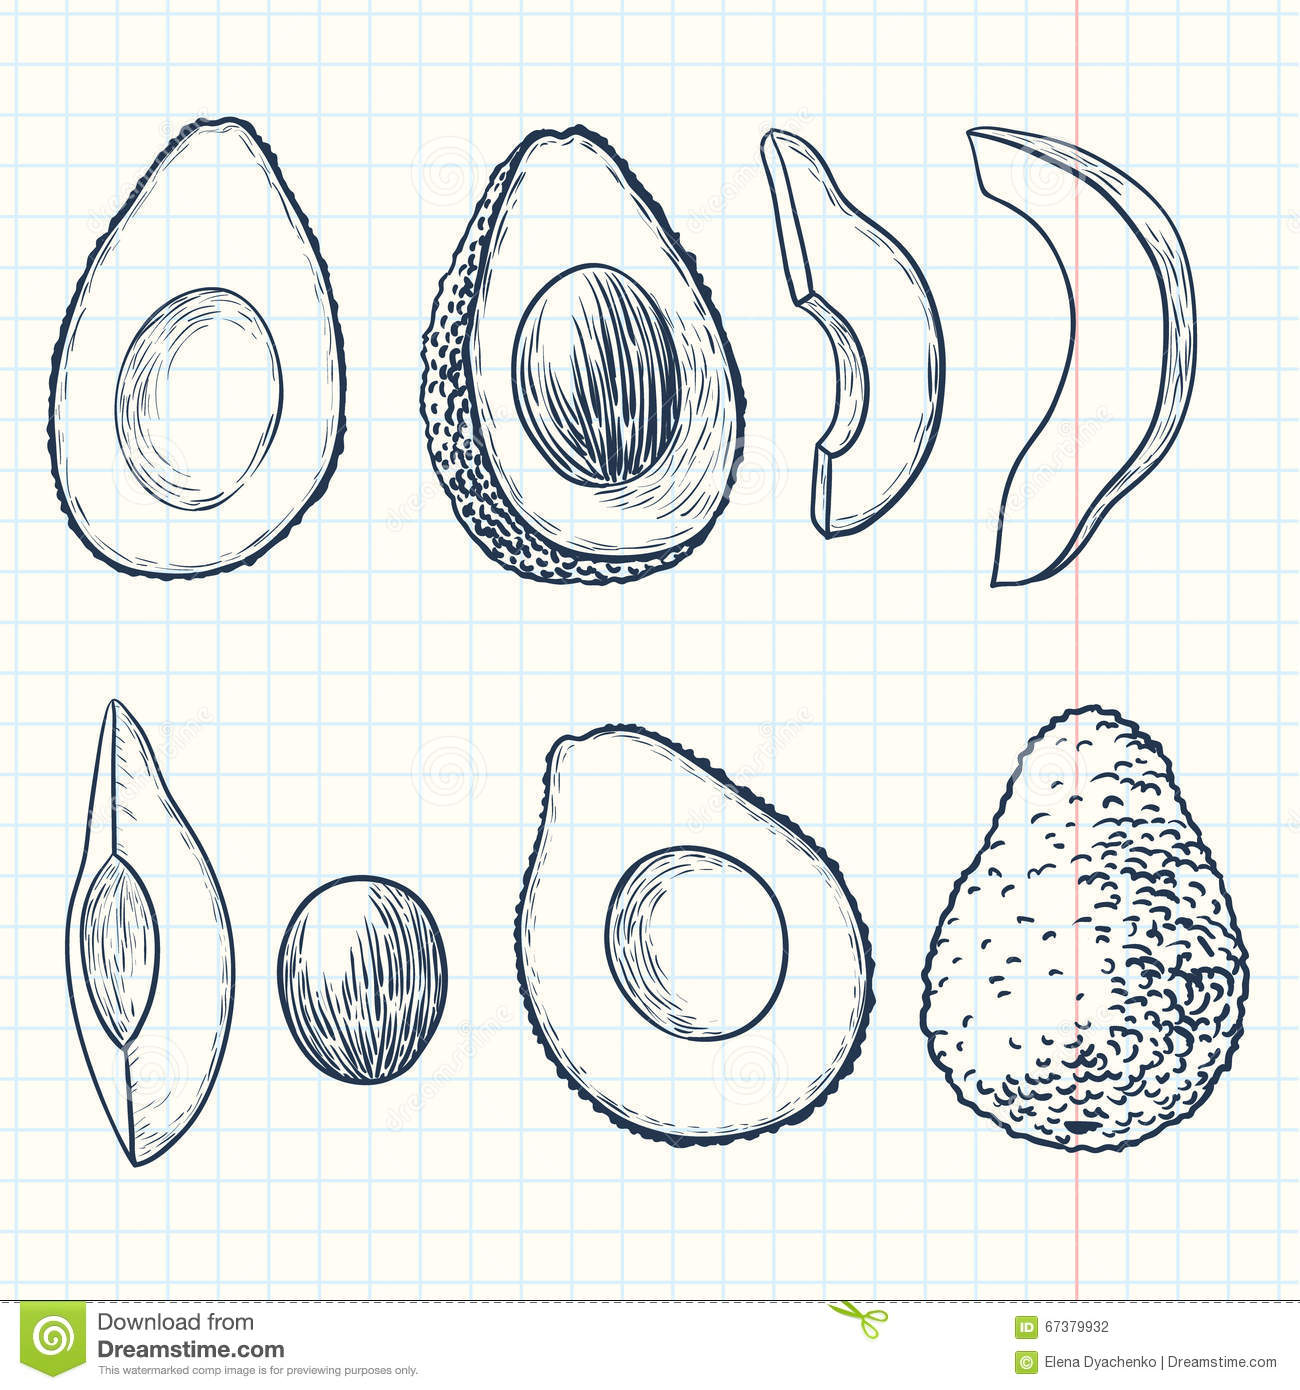 Vector Drawing Lines Html : Avocado stock vector image of retro outline shape